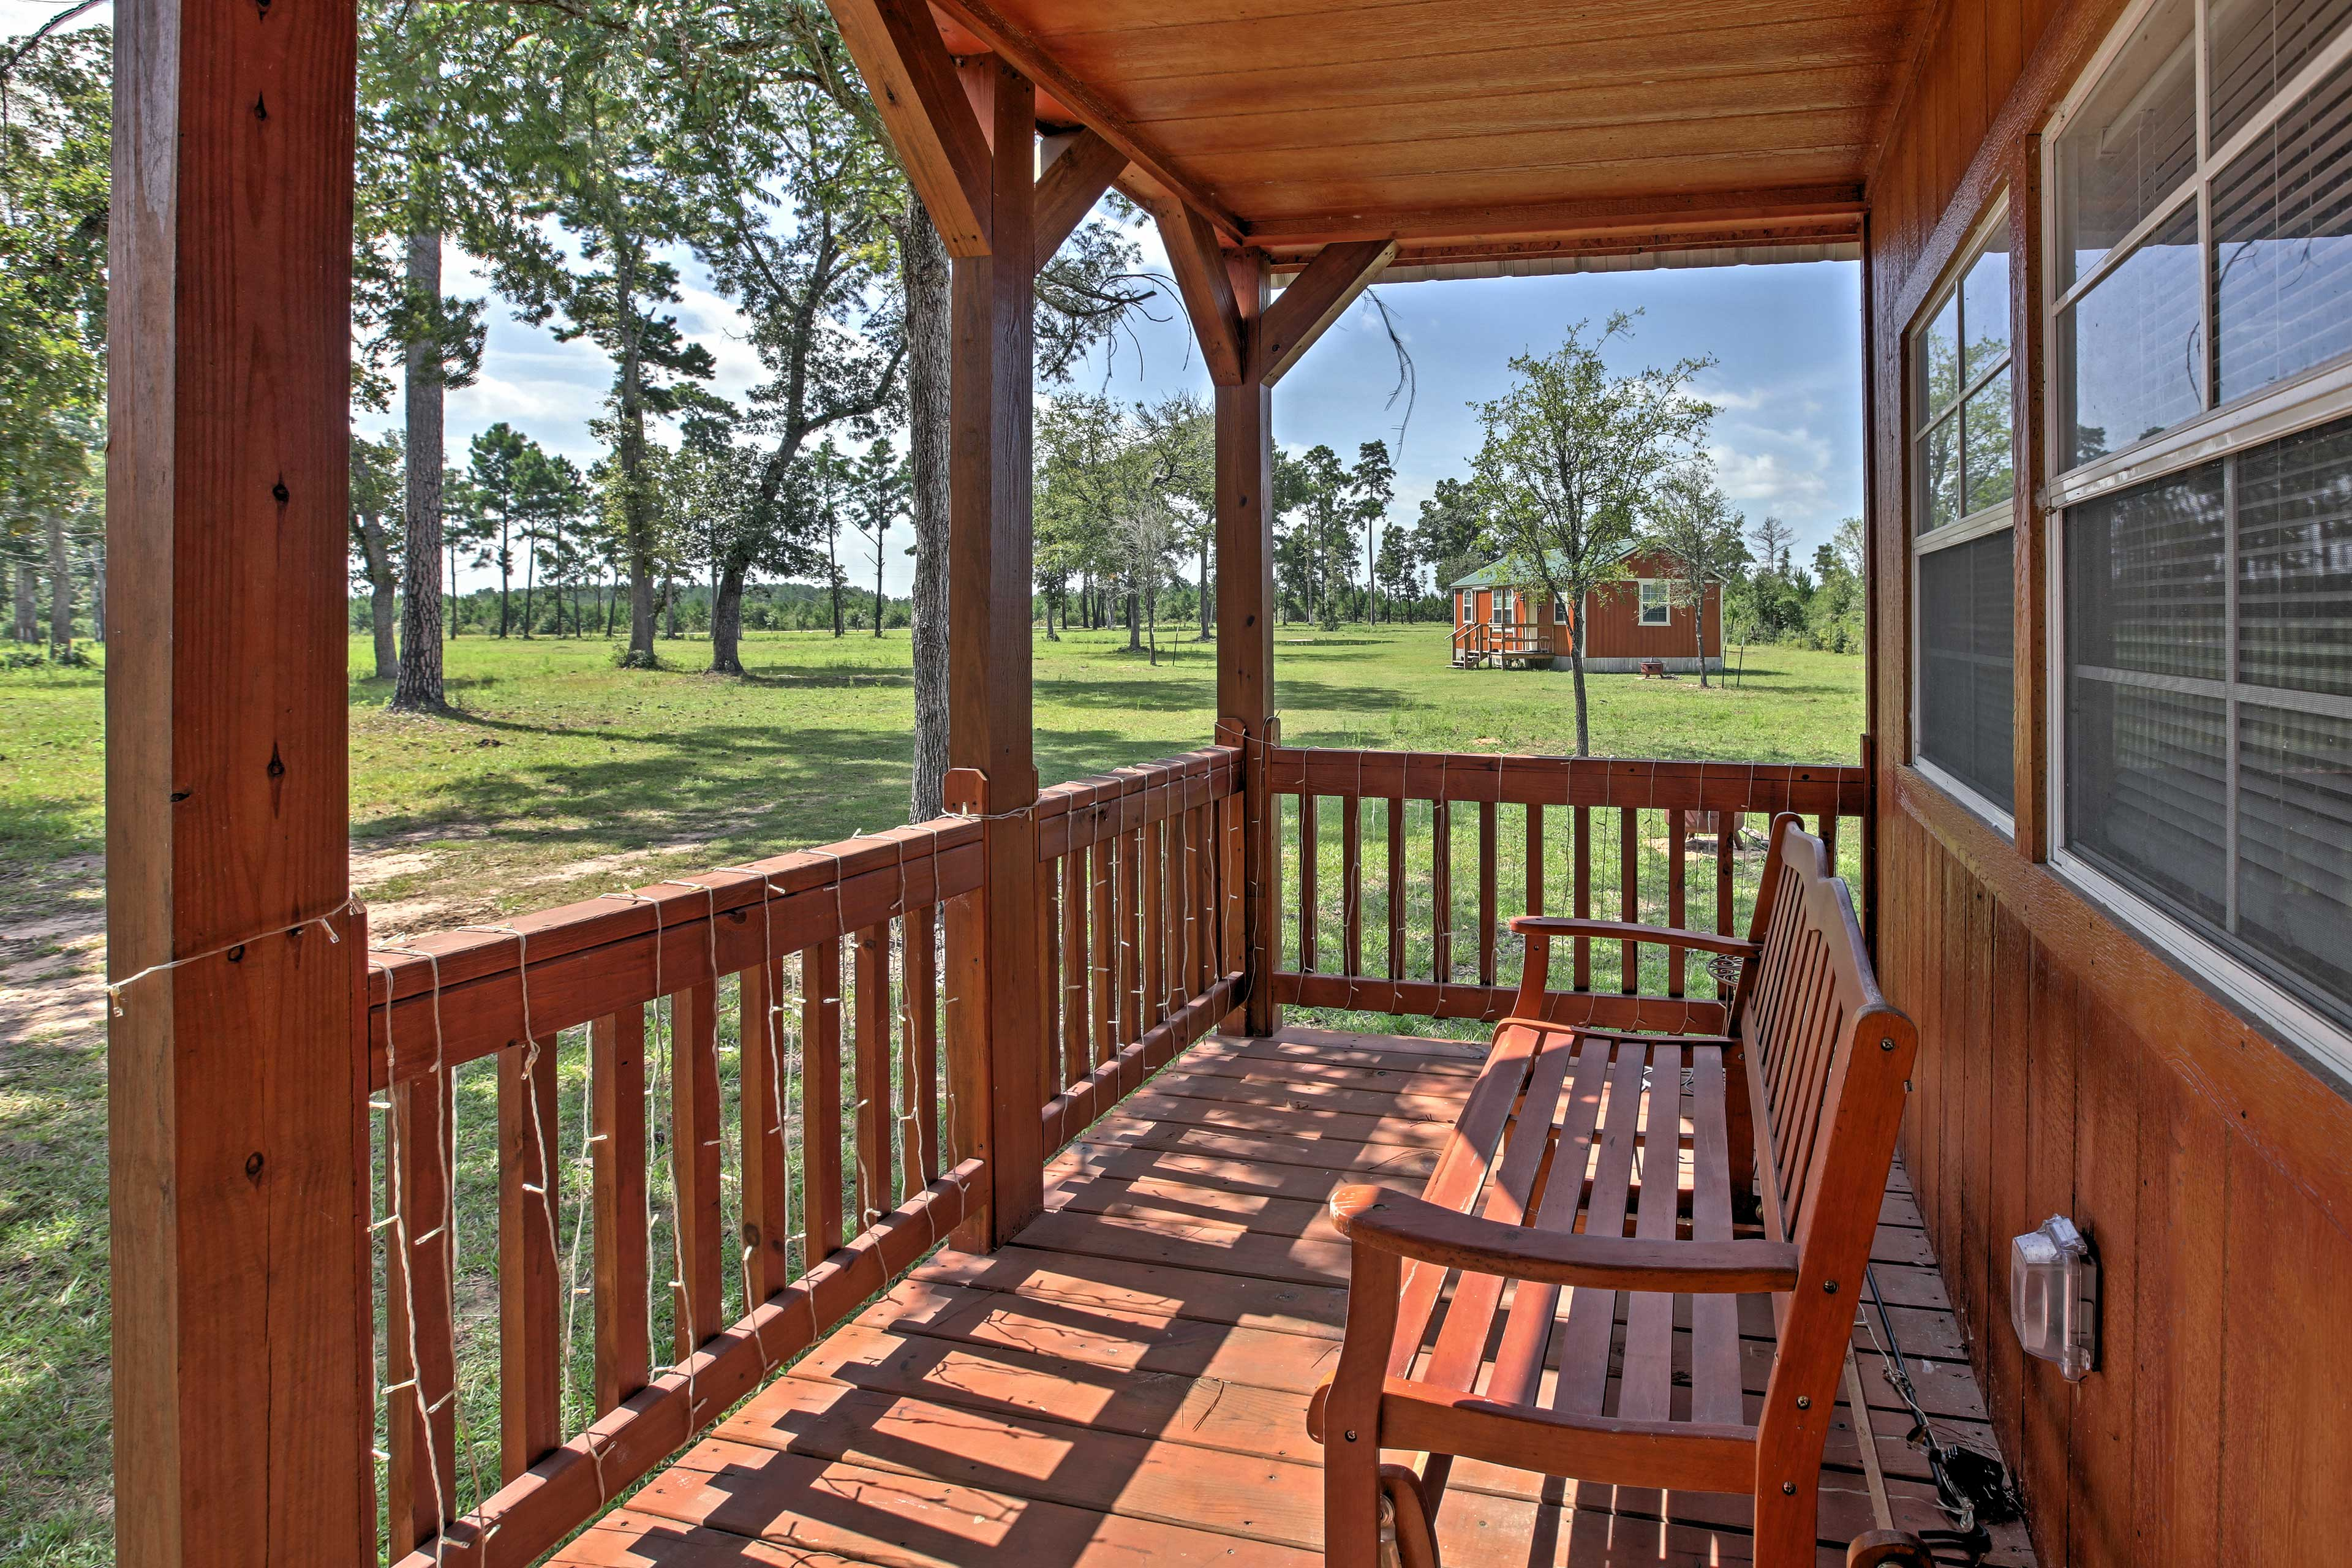 Escape to Texas at this 1-bedroom, 1-bath vacation rental cabin in Plantersville